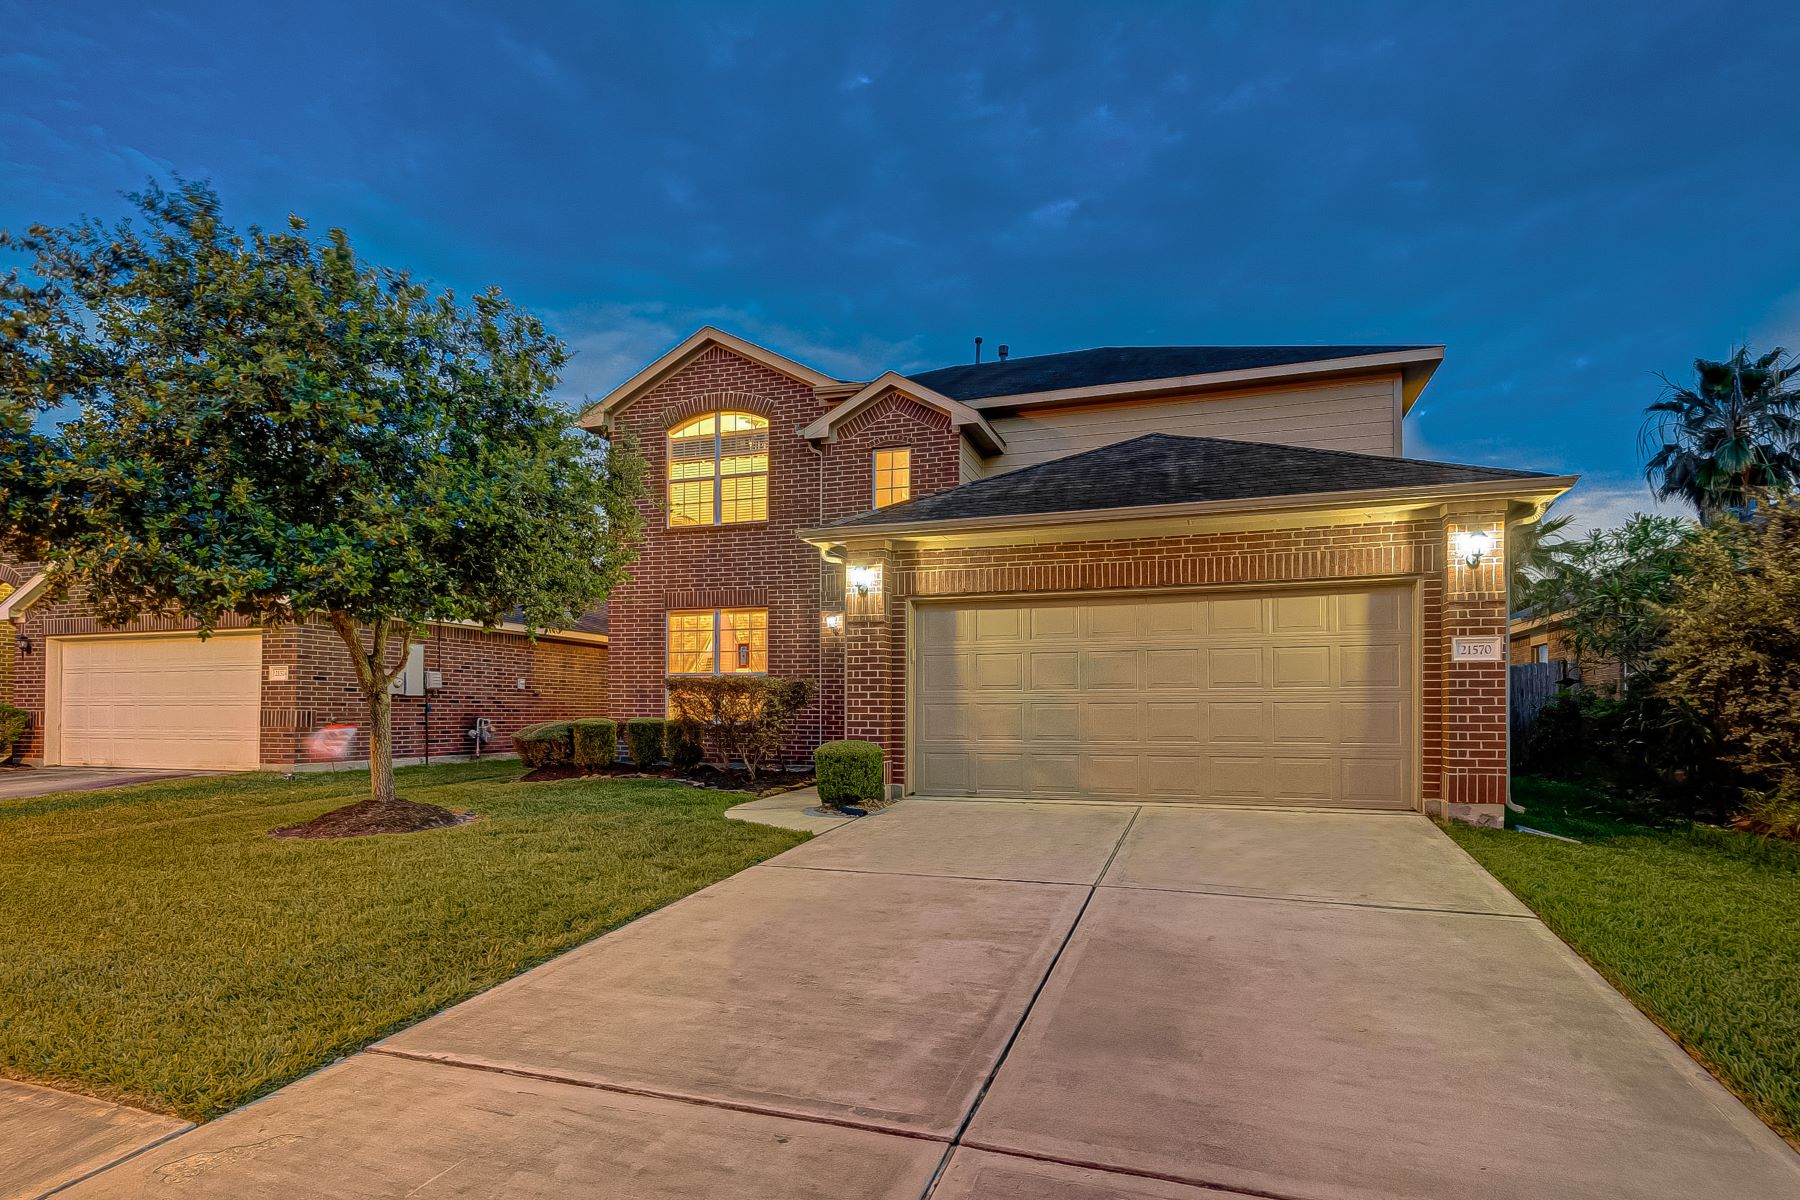 Single Family Homes for Sale at 21570 Kings Bend Drive Kingwood, Texas 77339 United States